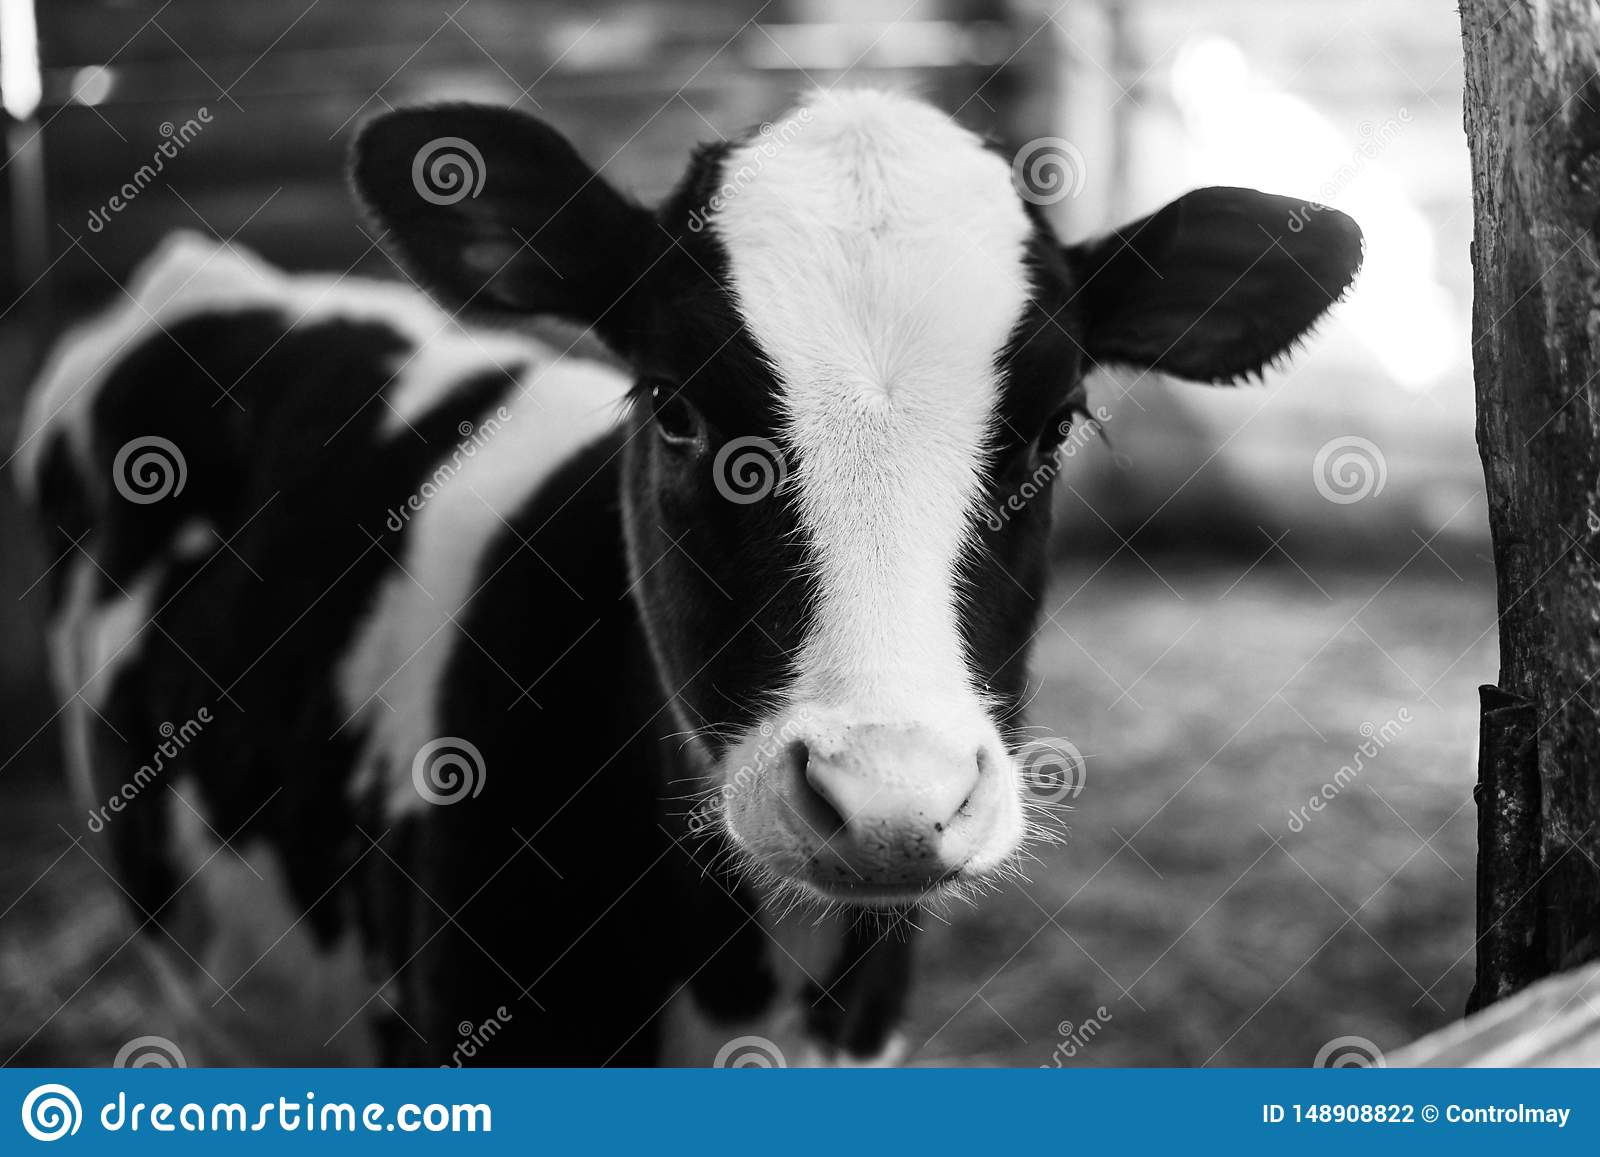 Beautiful Big Cow On The Farm Among A Lot Of Hay Black And White Photo Stock Photo Image Of Black Beef 148908822